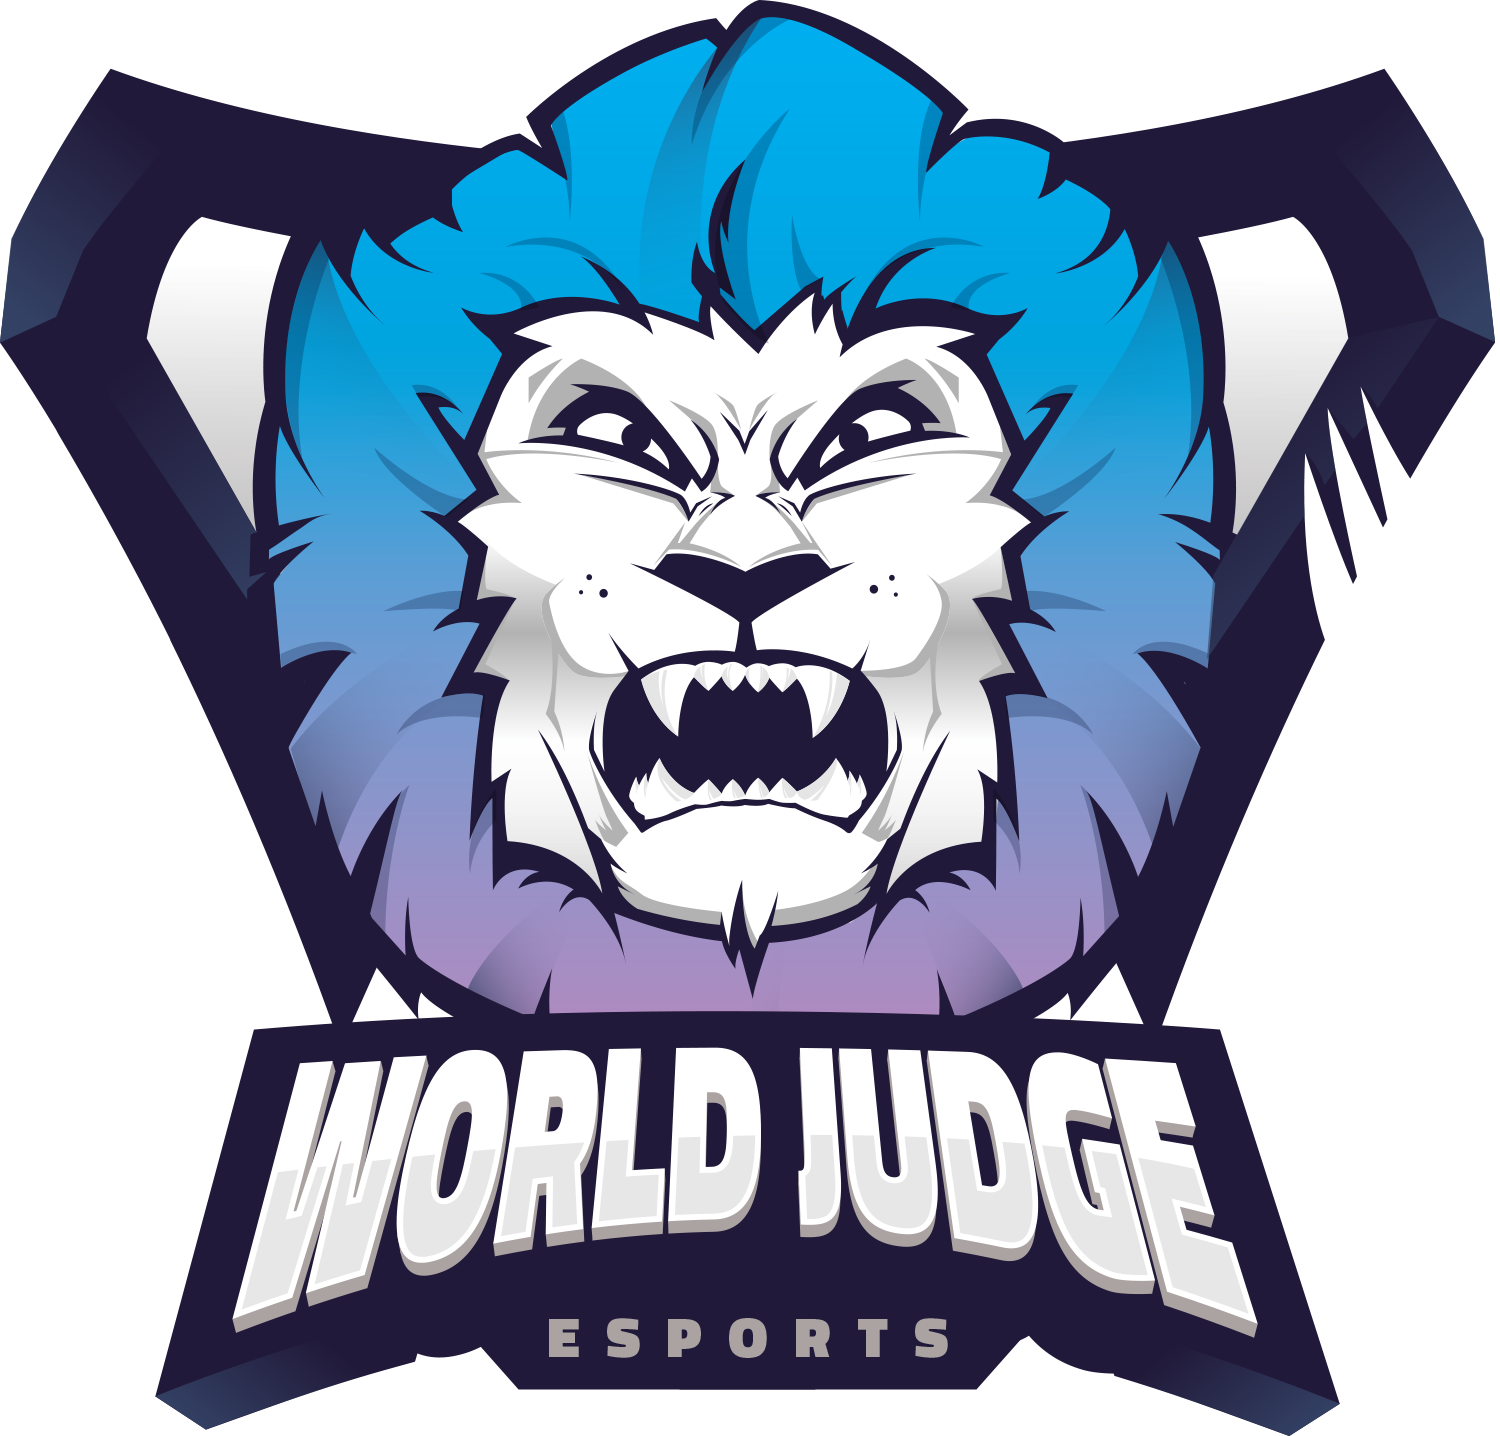 World Judge Dark